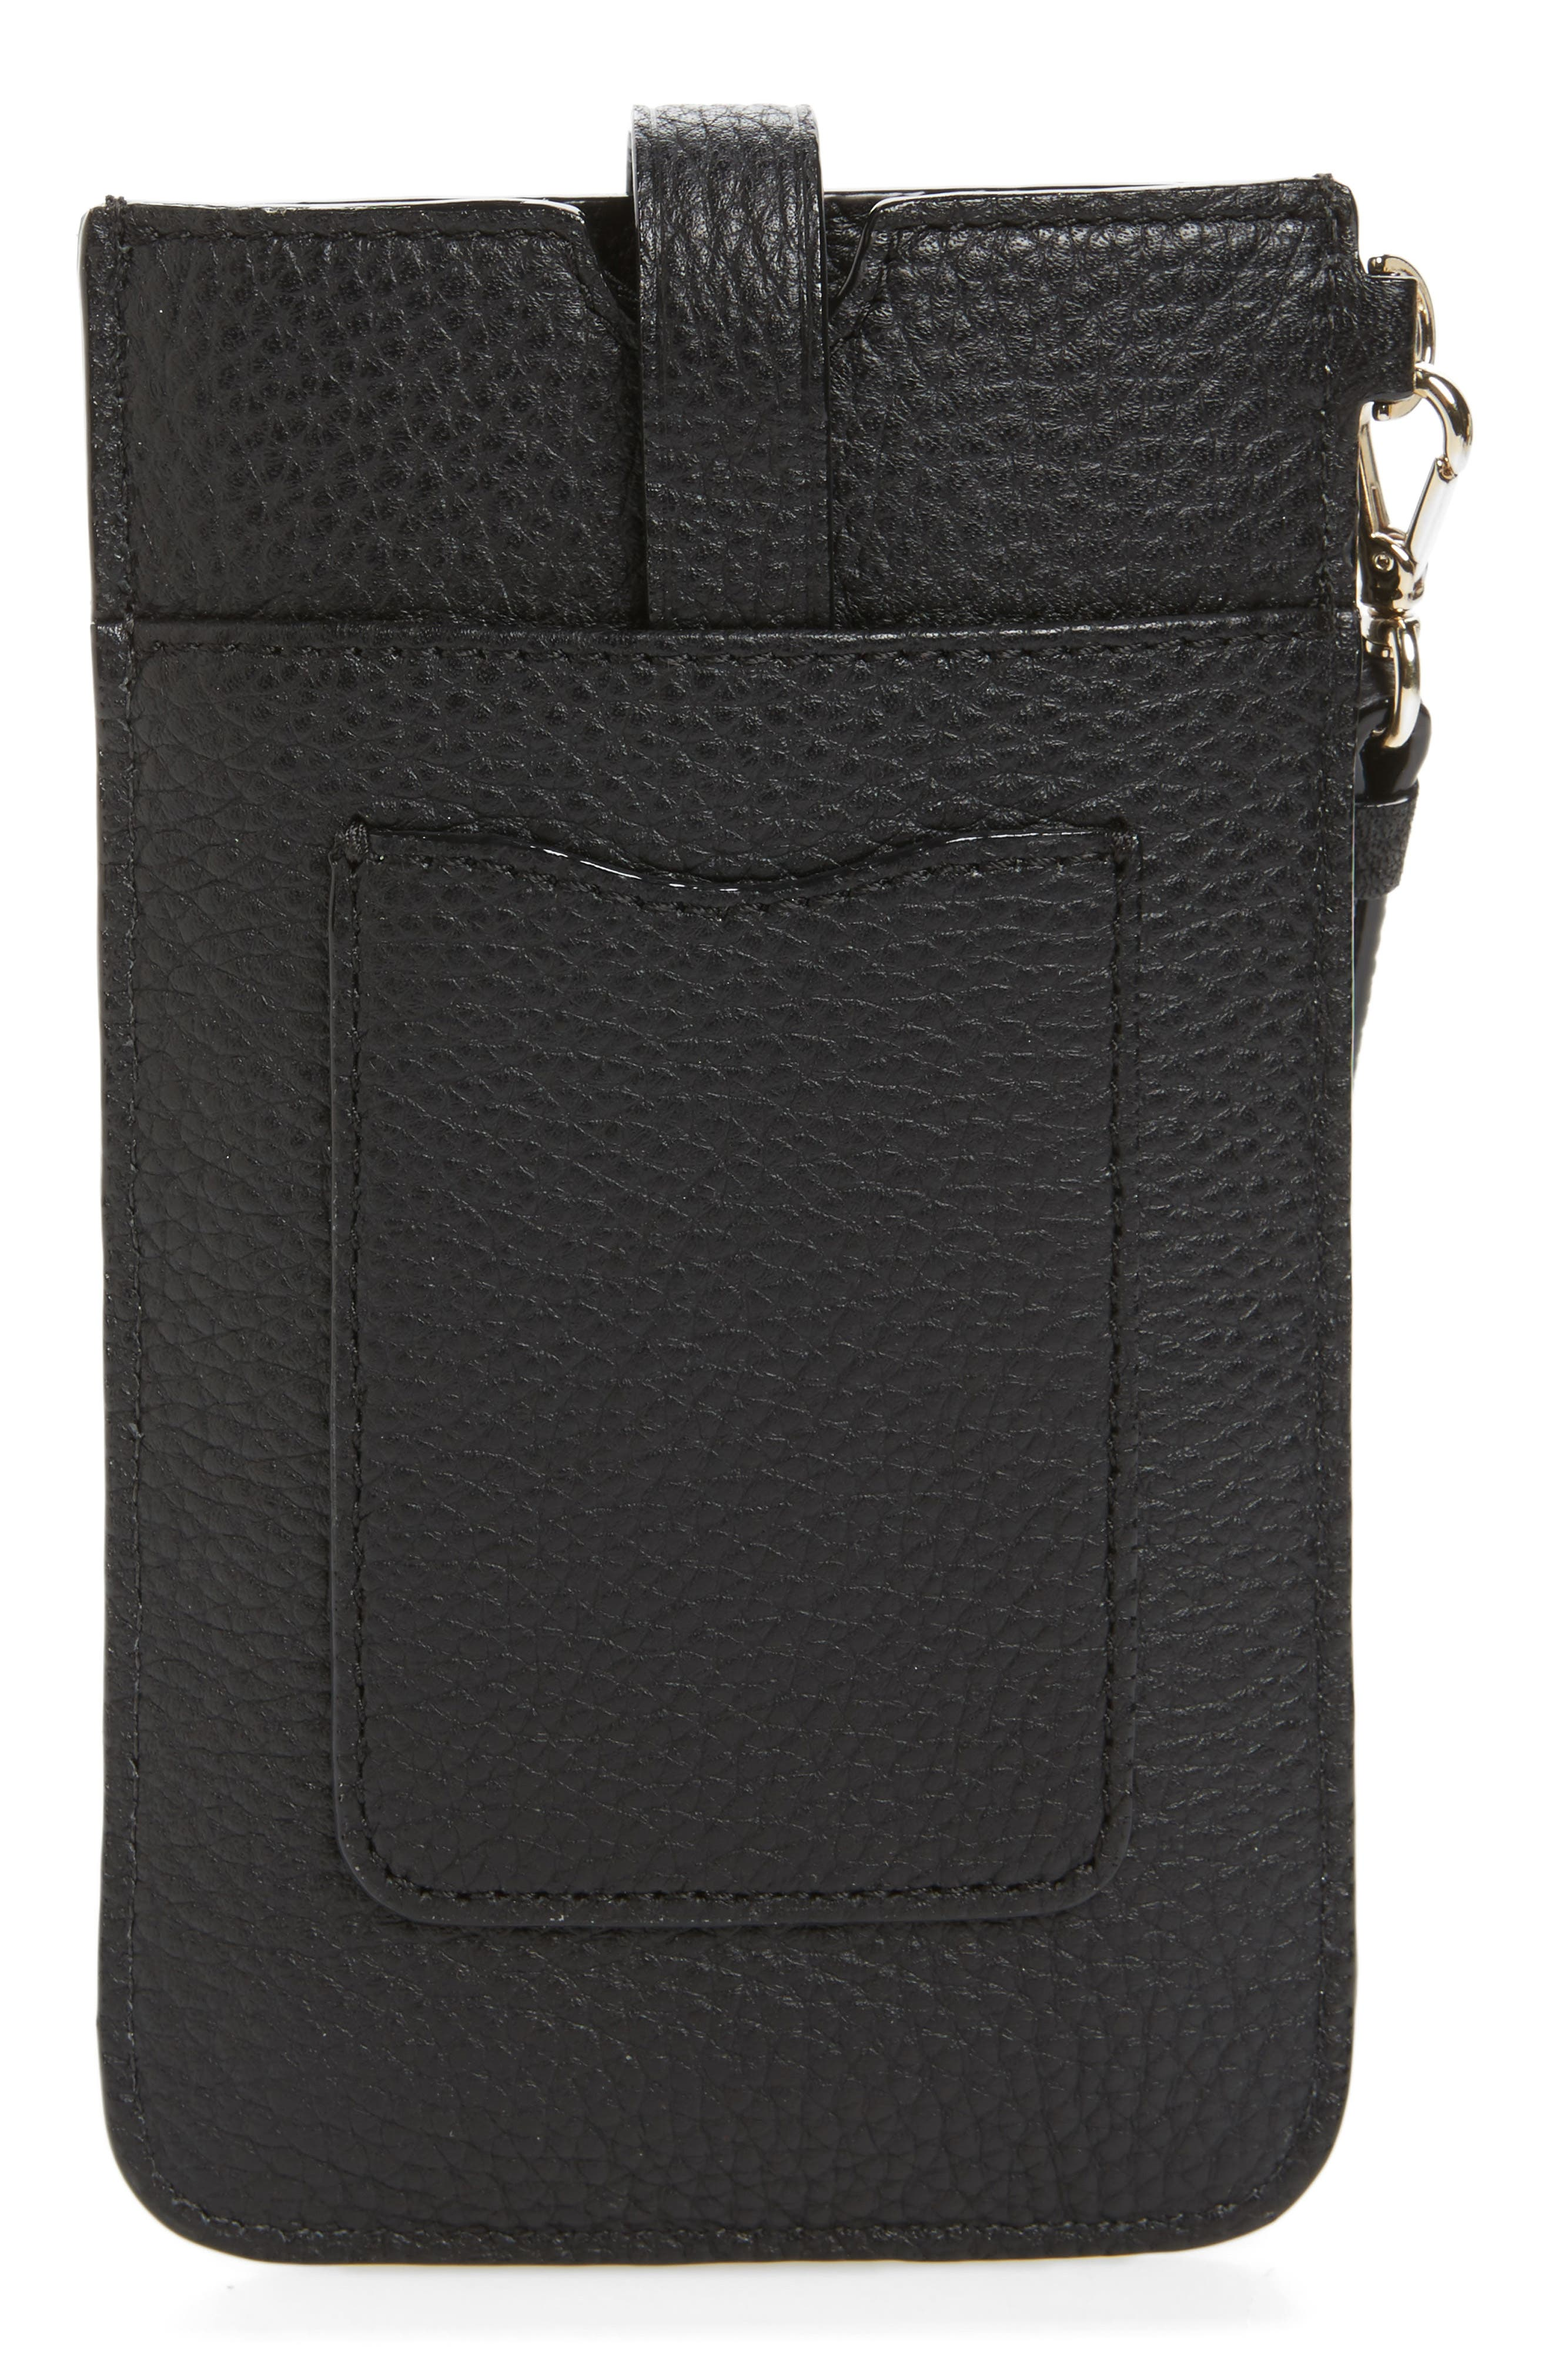 leather smartphone wristlet,                             Alternate thumbnail 4, color,                             001